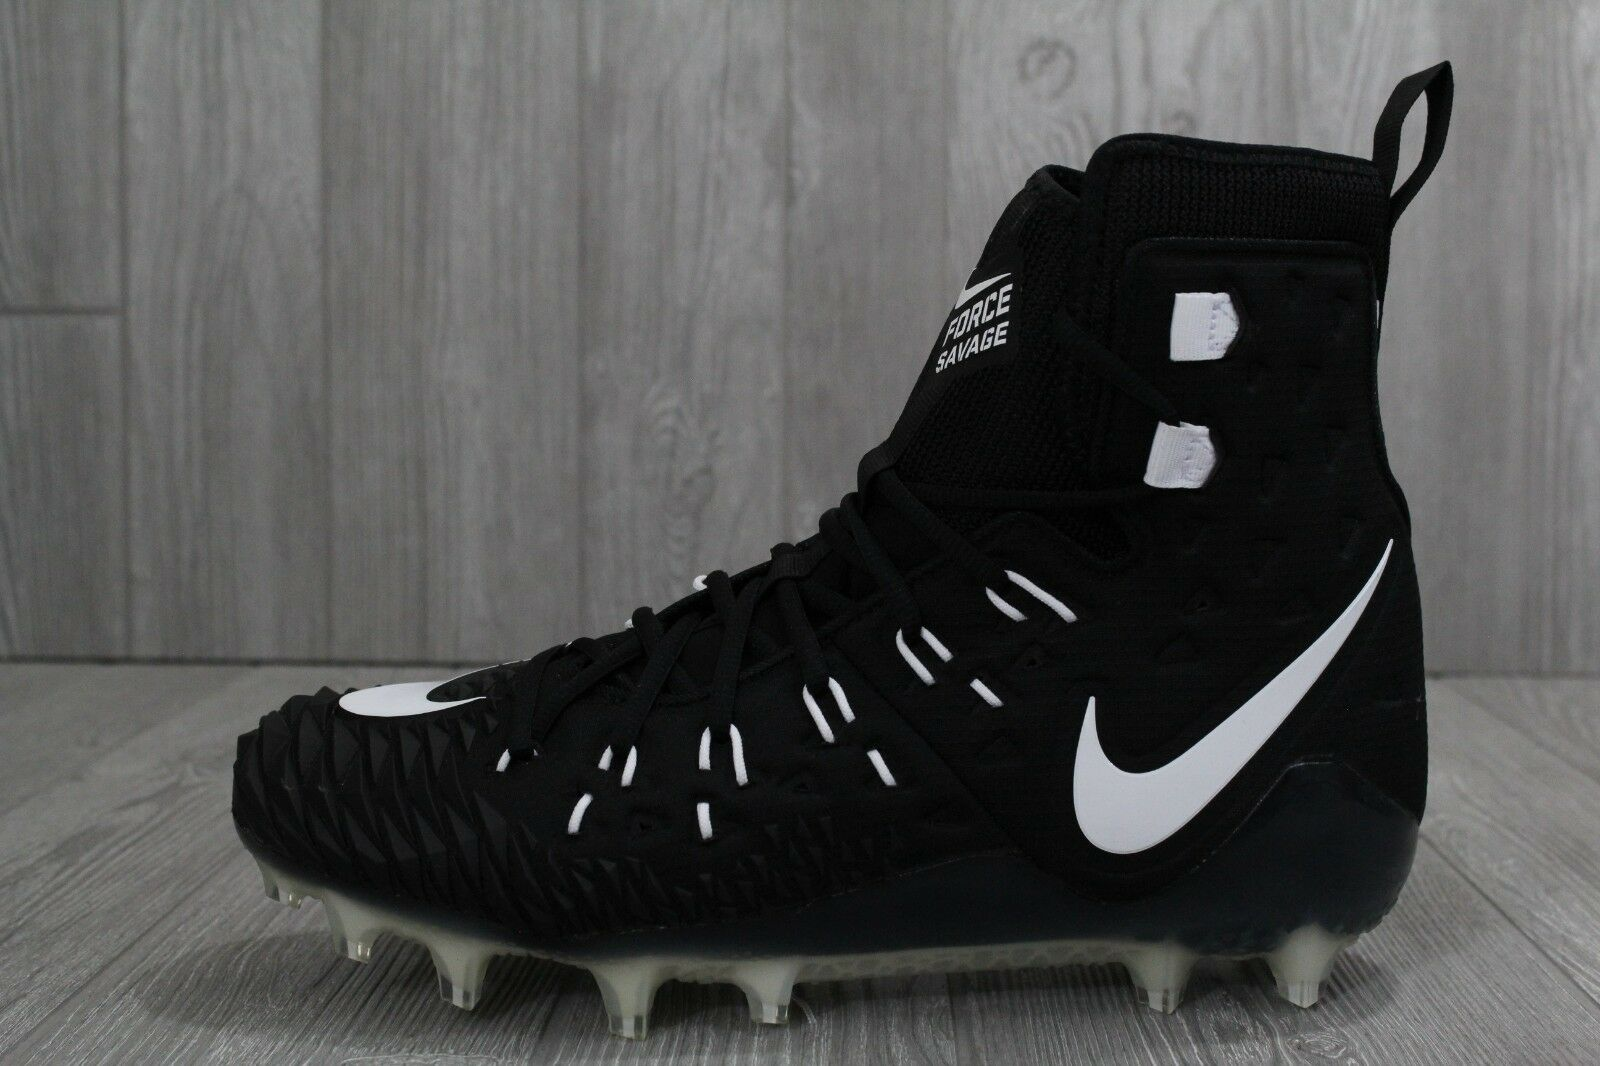 30 Nike Force Savage Elite TD Football Cleats Black White Size 11-13 857063-011